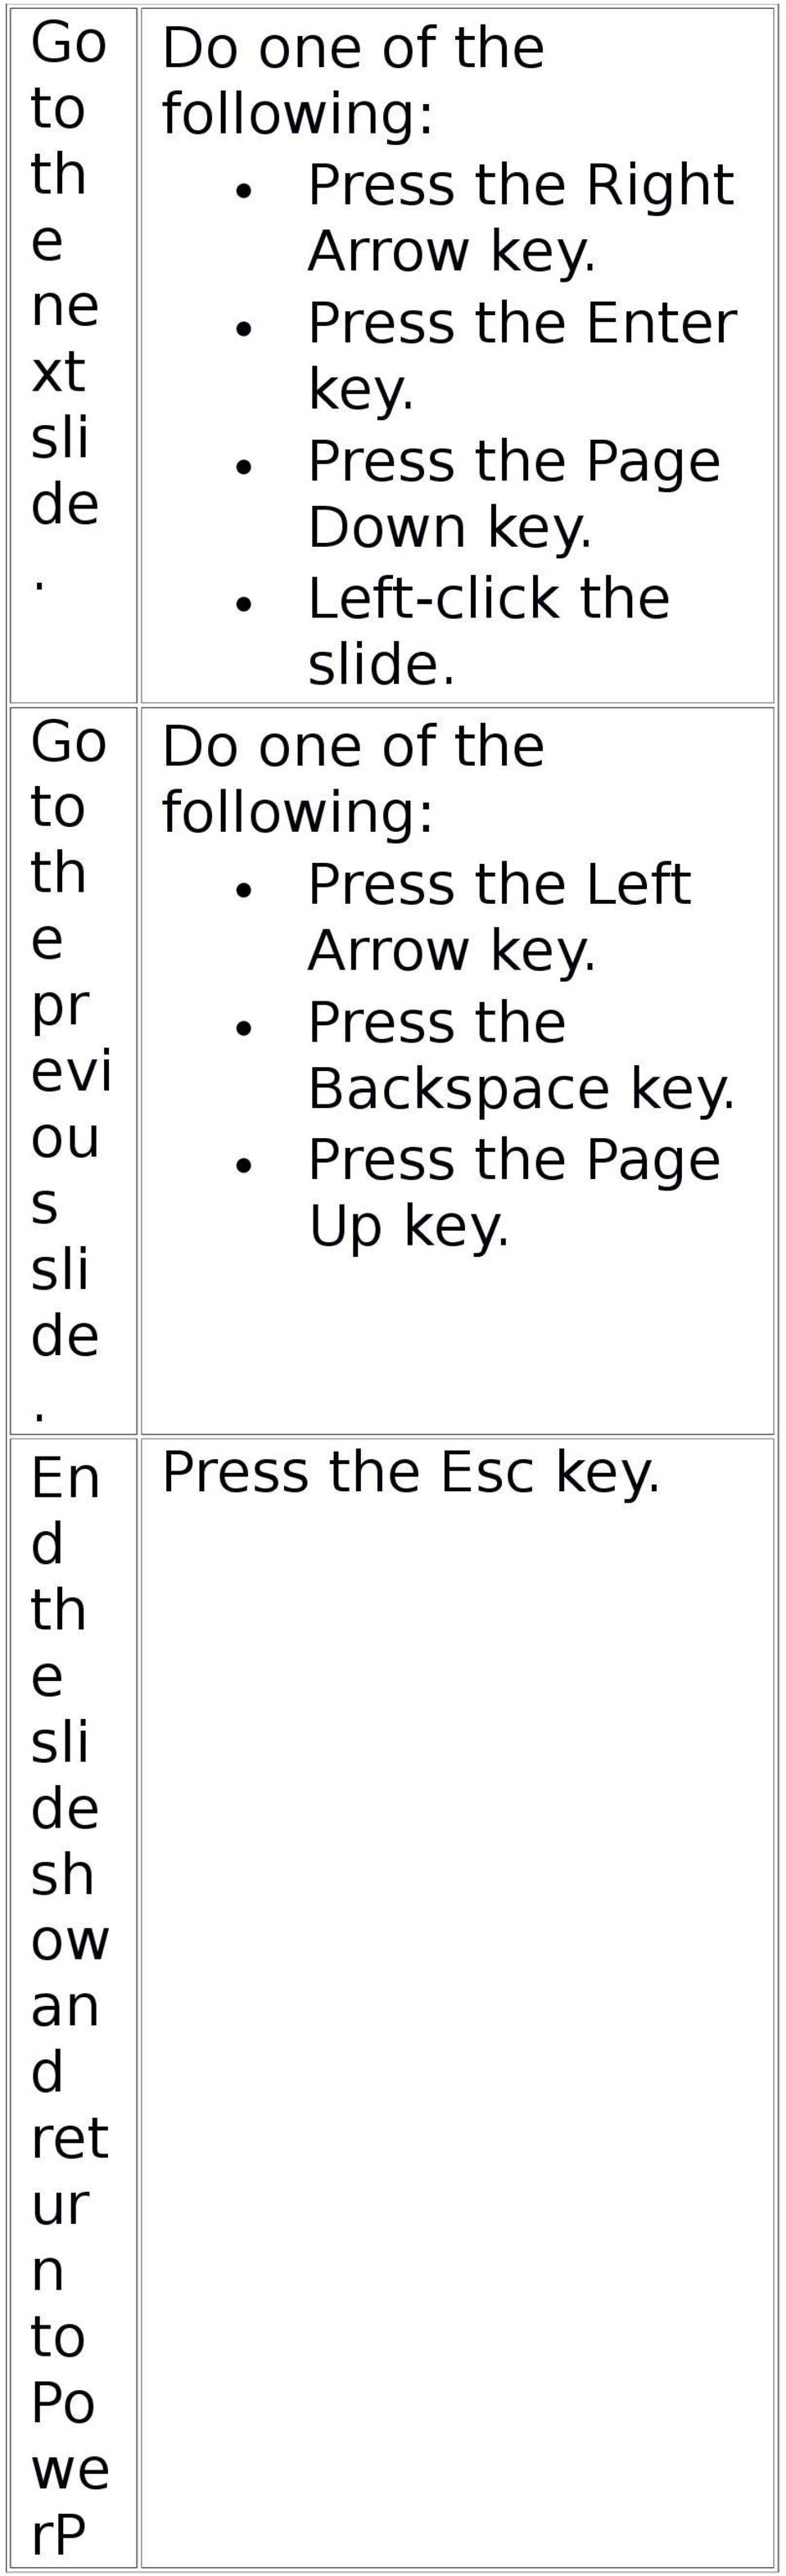 Right Arrow key. Press the Enter key. Press the Page Down key. Left-click the slide.